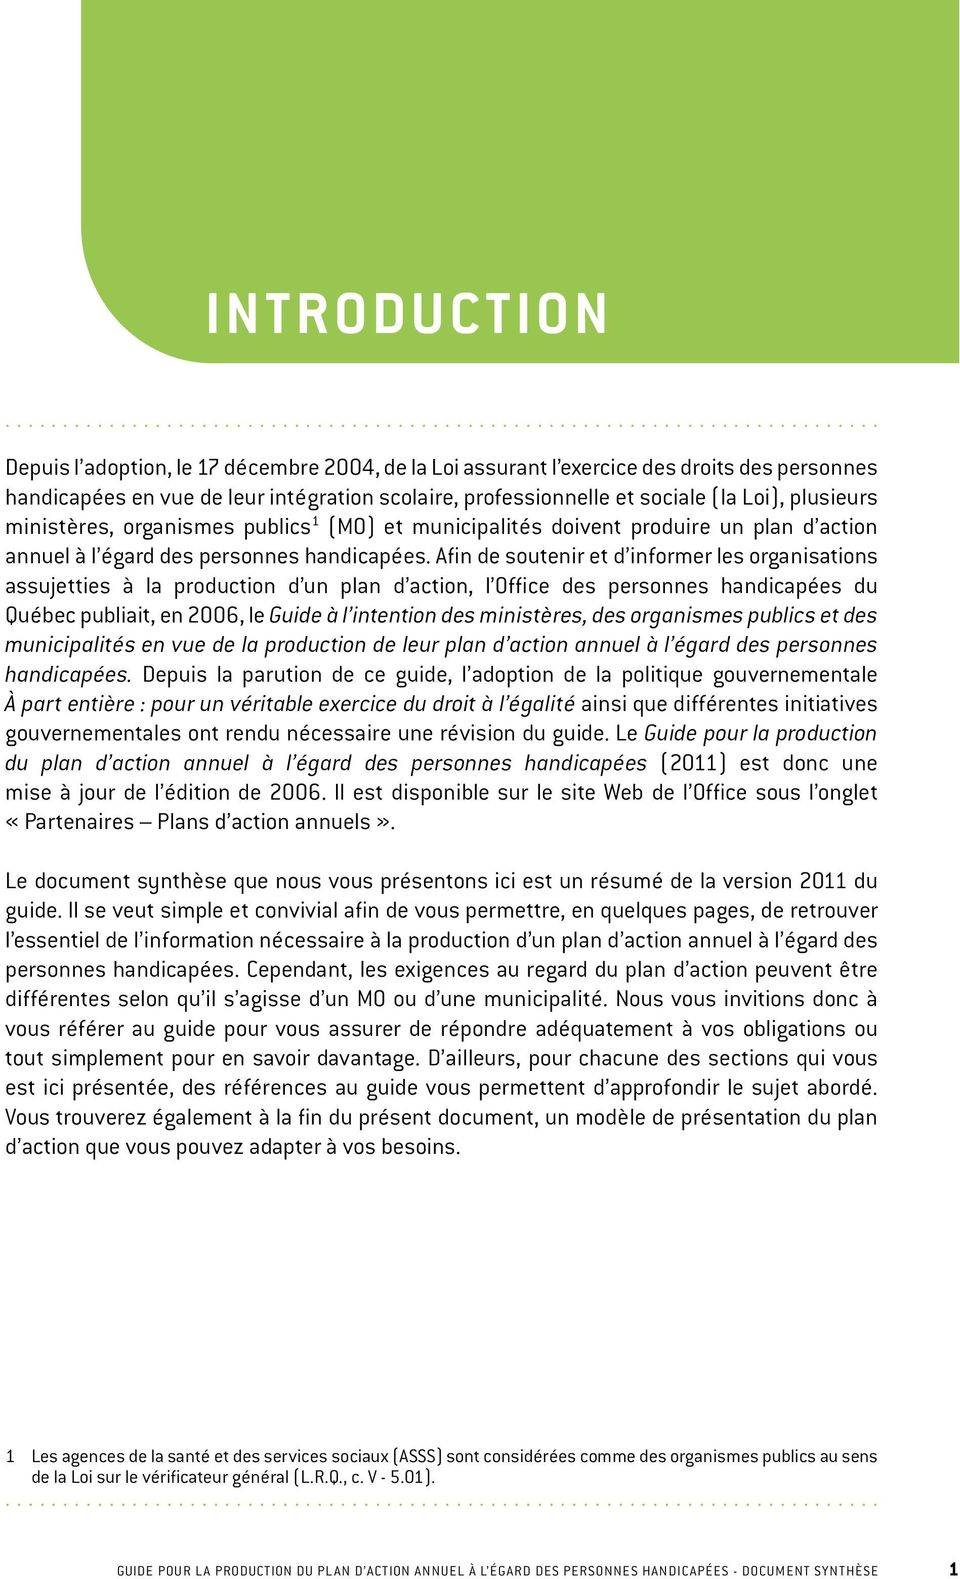 Afin de soutenir et d informer les organisations assujetties à la production d un plan d action, l Office des personnes handicapées du Québec publiait, en 2006, le Guide à l intention des ministères,